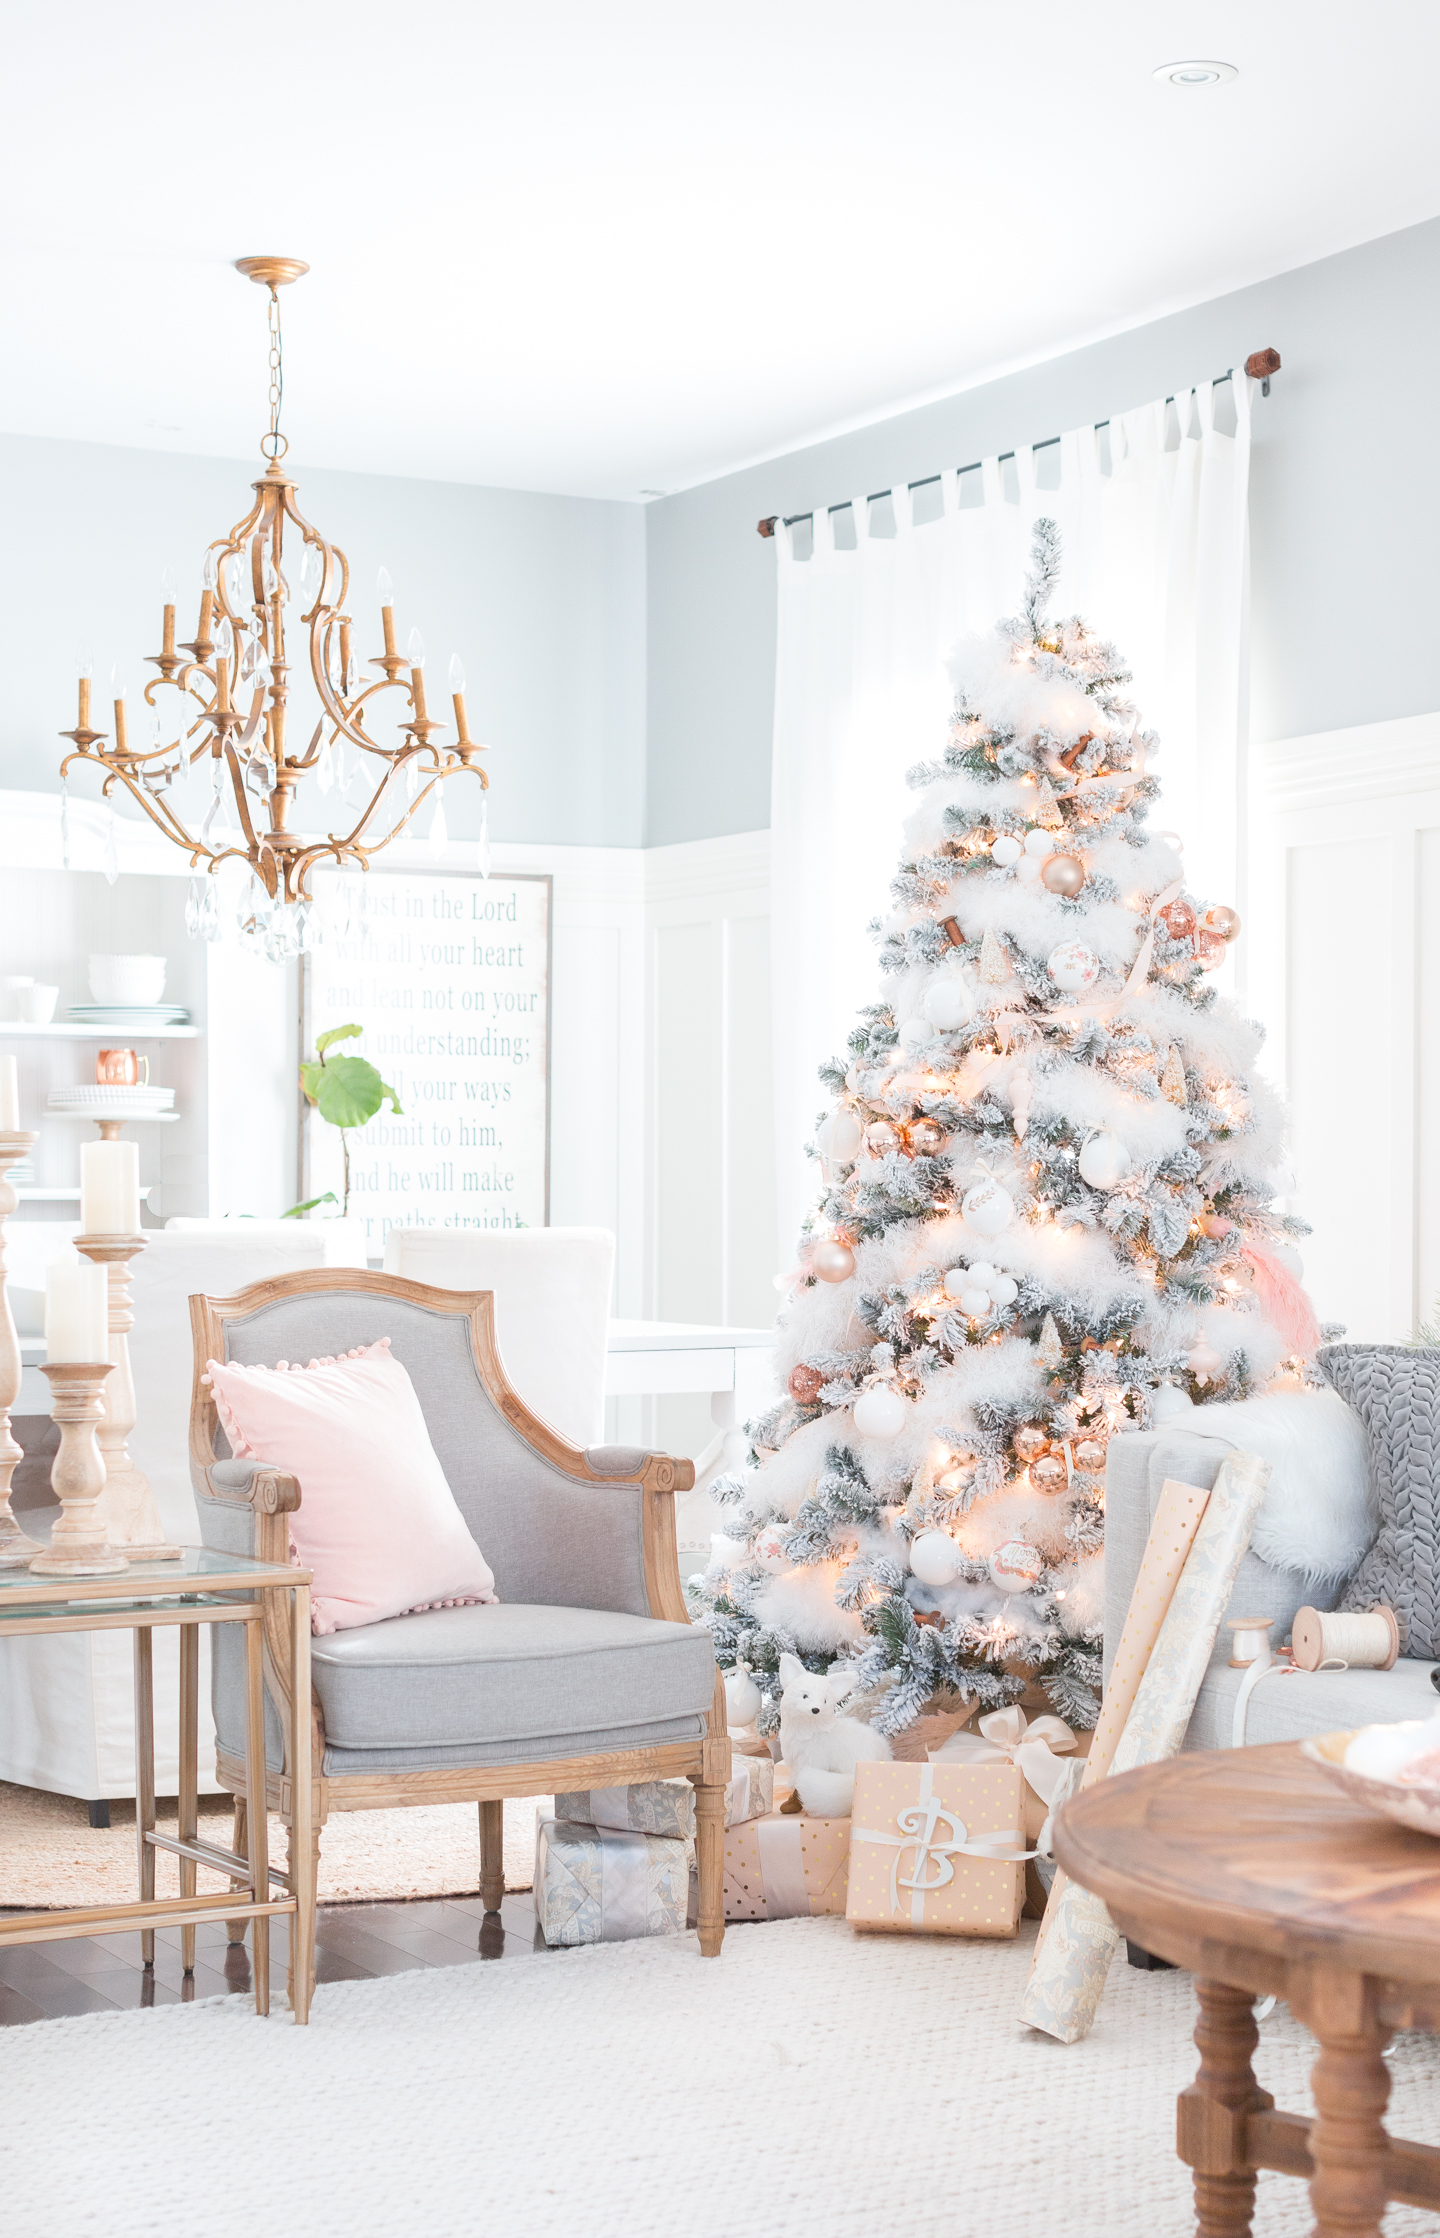 How To Make Your Christmas Living Room Decor Look Like A Million Bucks_1 christmas living room decor How To Make Your Christmas Living Room Decor Look Like A Million Bucks How To Make Your Christmas Living Room Decor Look Like A Million Bucks 5